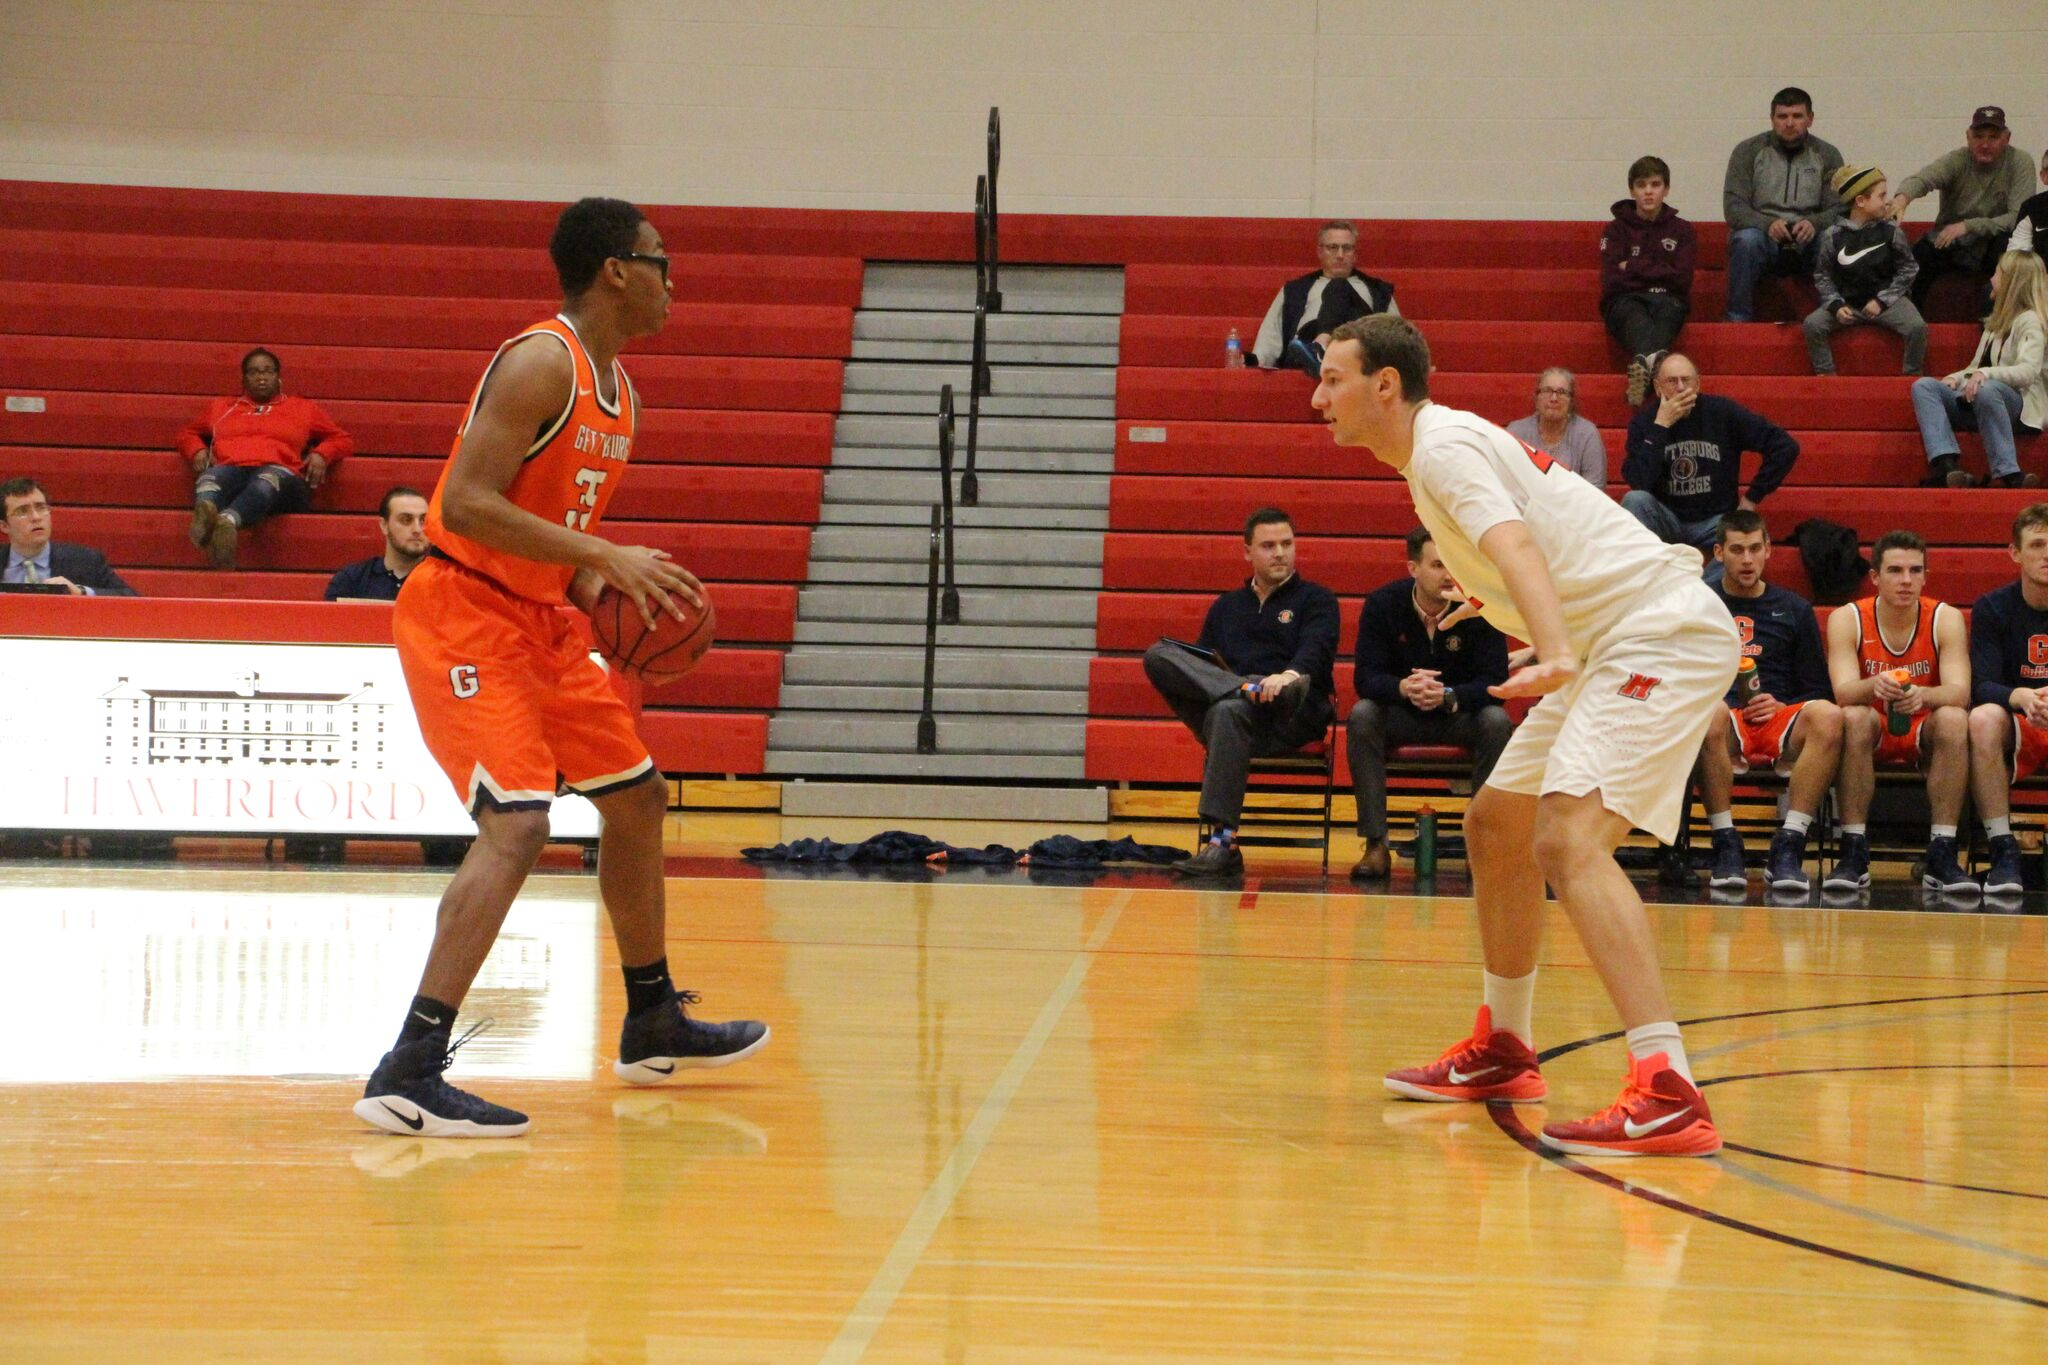 In 2012, Churon Lanier-Martin '16 made one of the biggest moves of his life. He moved from Chester, PA to Hershey to attend Milton Hershey School. He now plays college basketball at Gettysburg College.